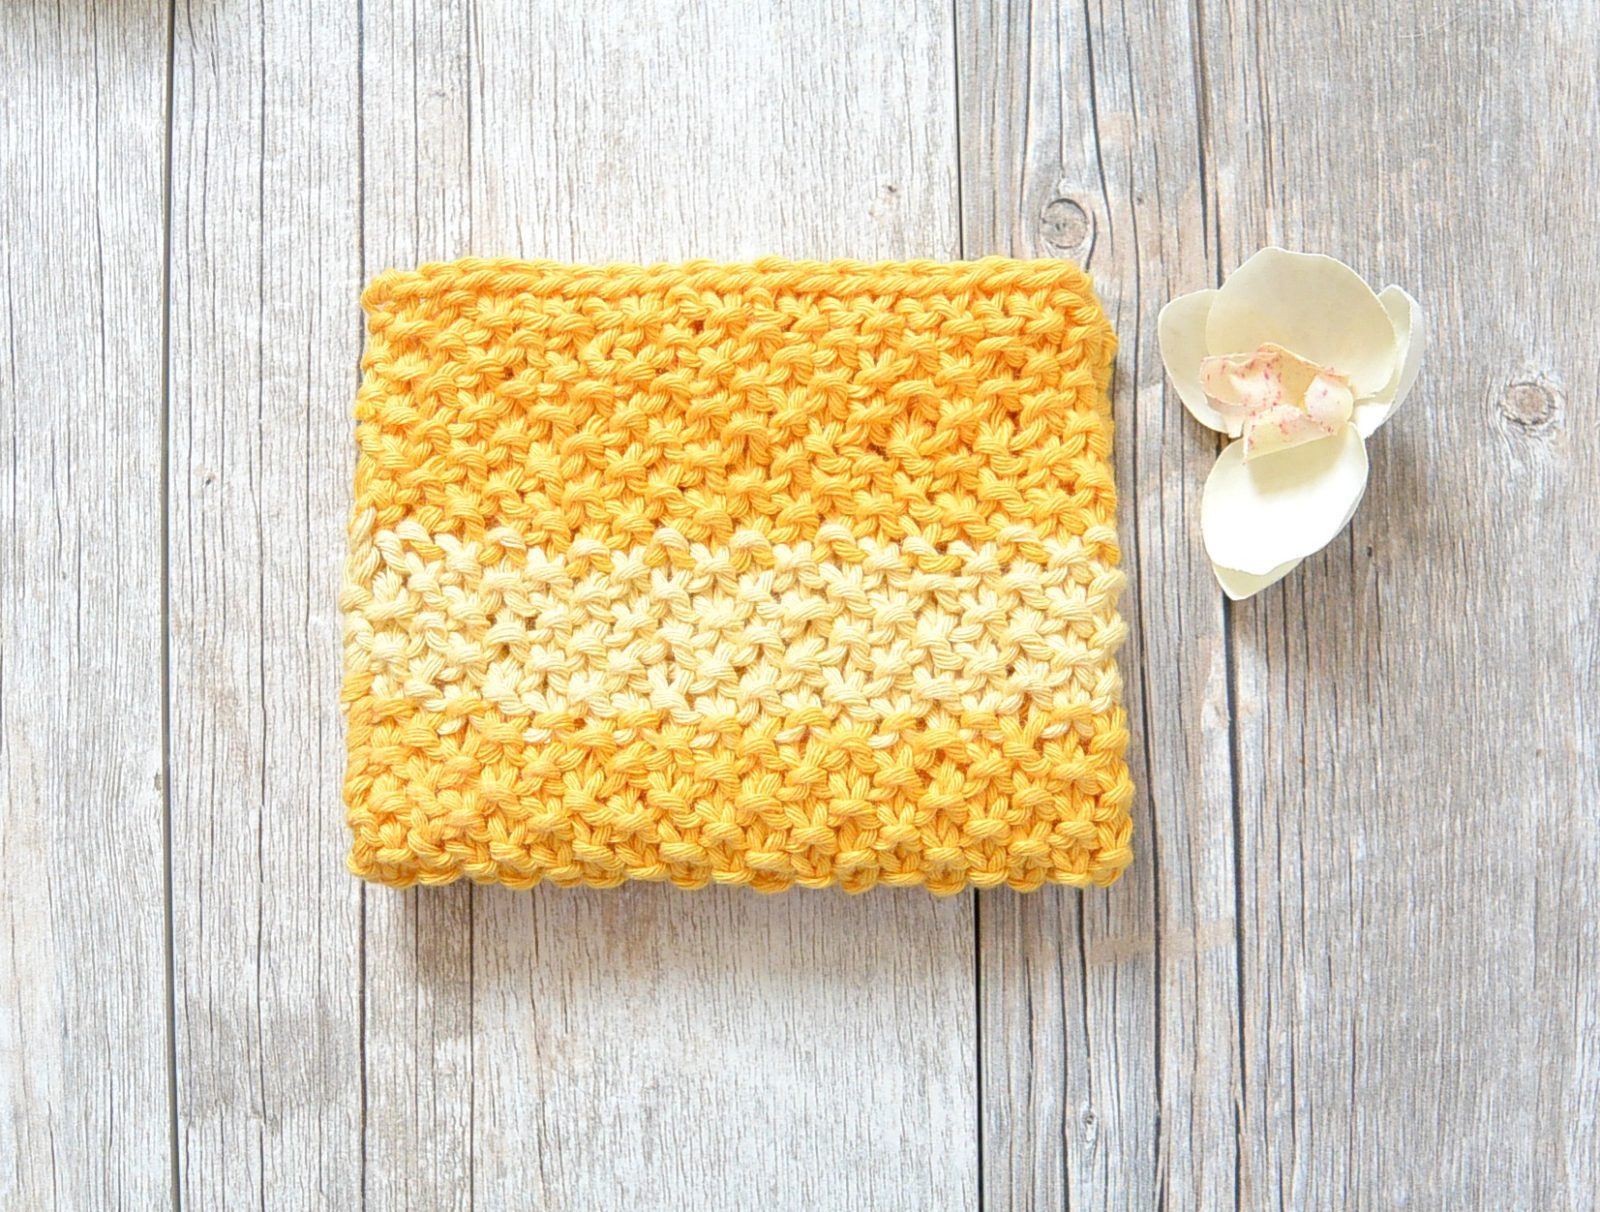 Knit Dishcloth Patterns For Beginners Easy Knit Waschloth Pattern Sunshine Washcloth Mama In A Stitch